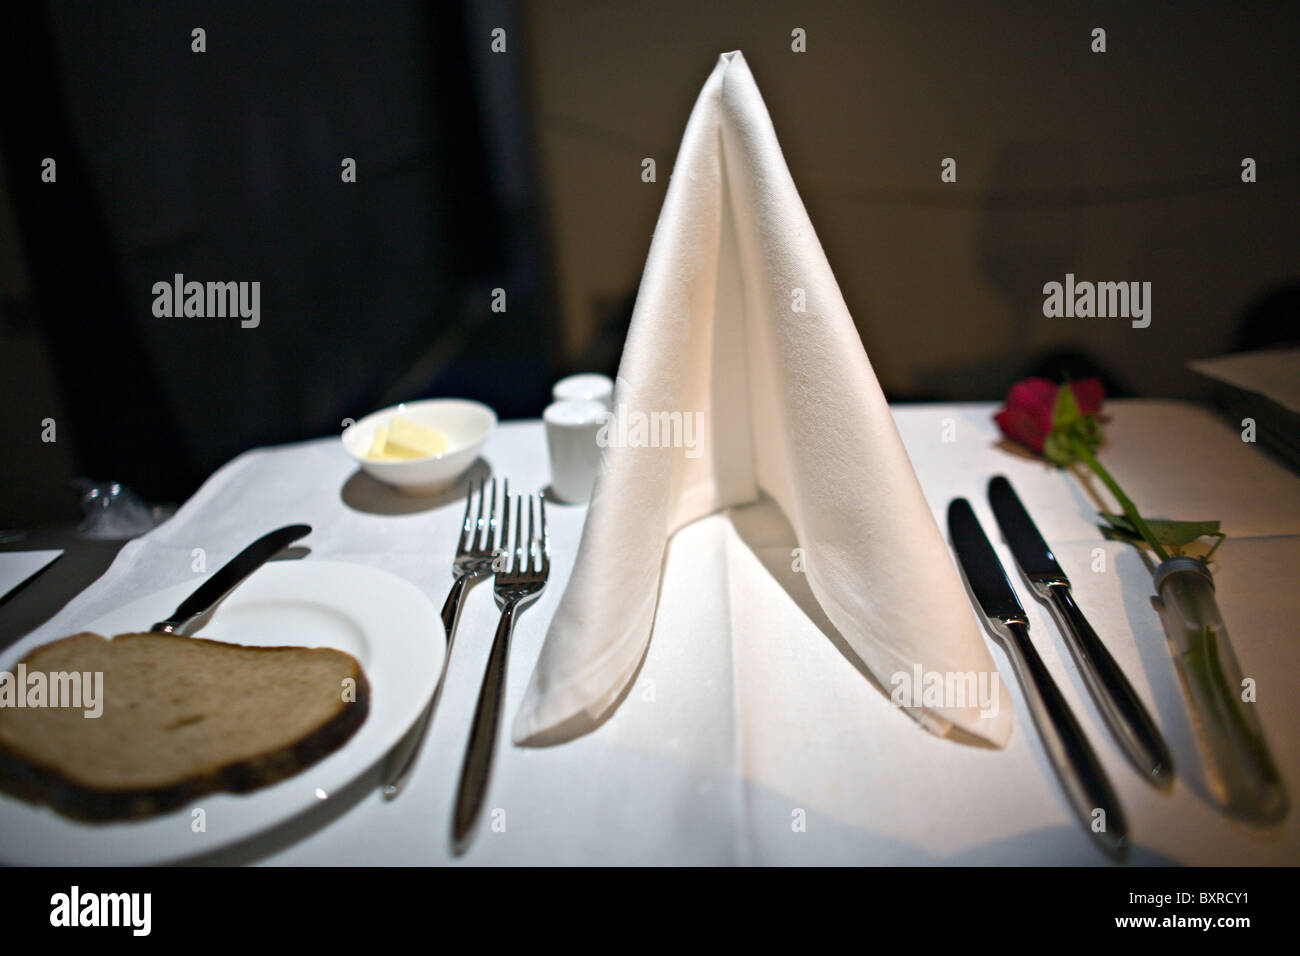 Lufthansa Airlines First Class meal setting with white linen, real silverware and a rose. - Stock Image